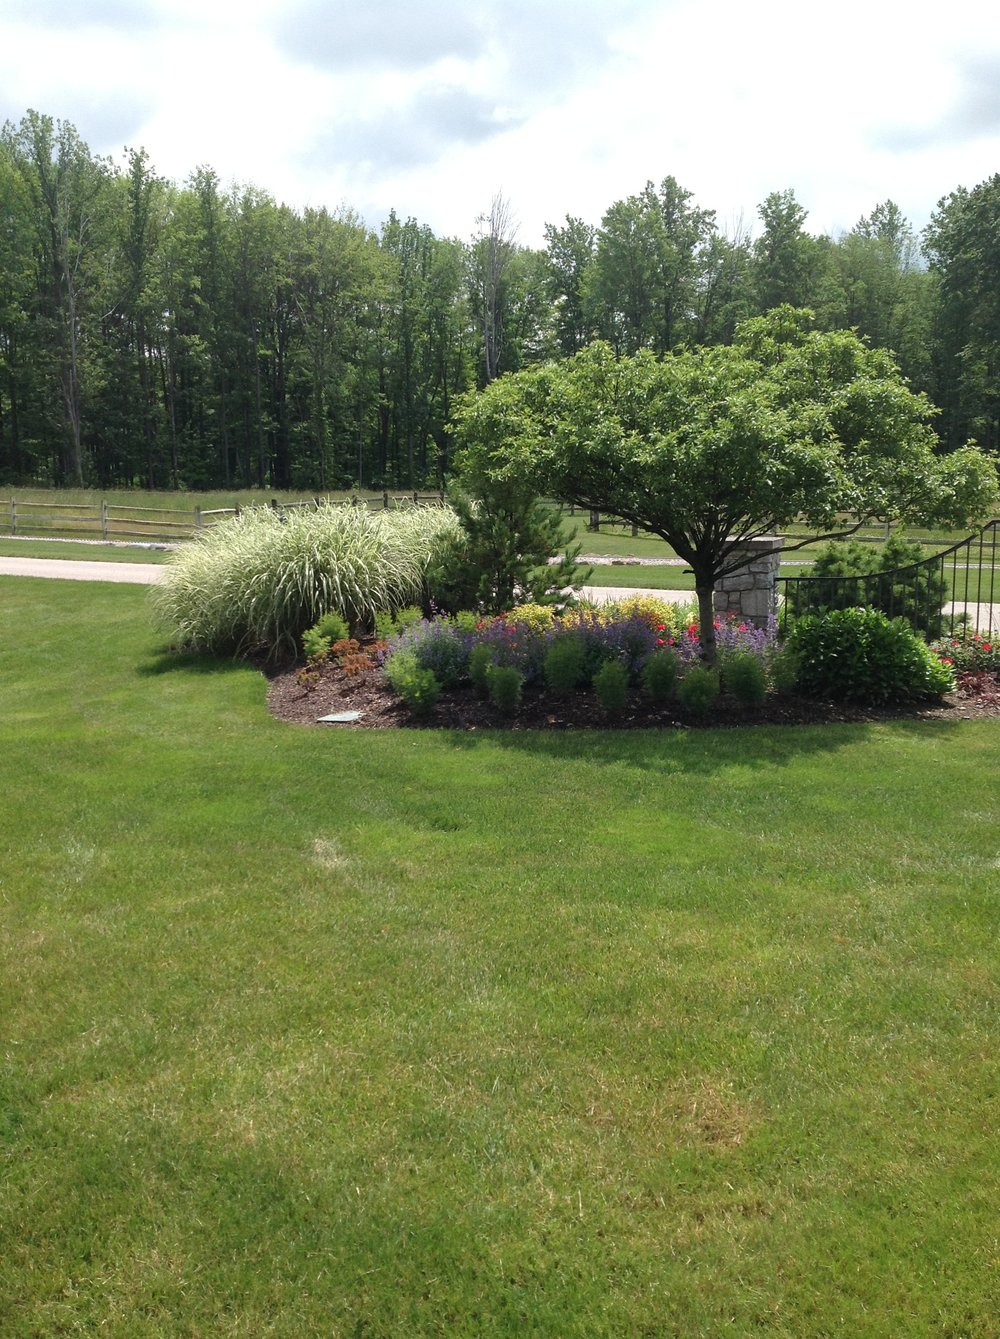 Unilock approved lawn care in Pepper Pike, OH